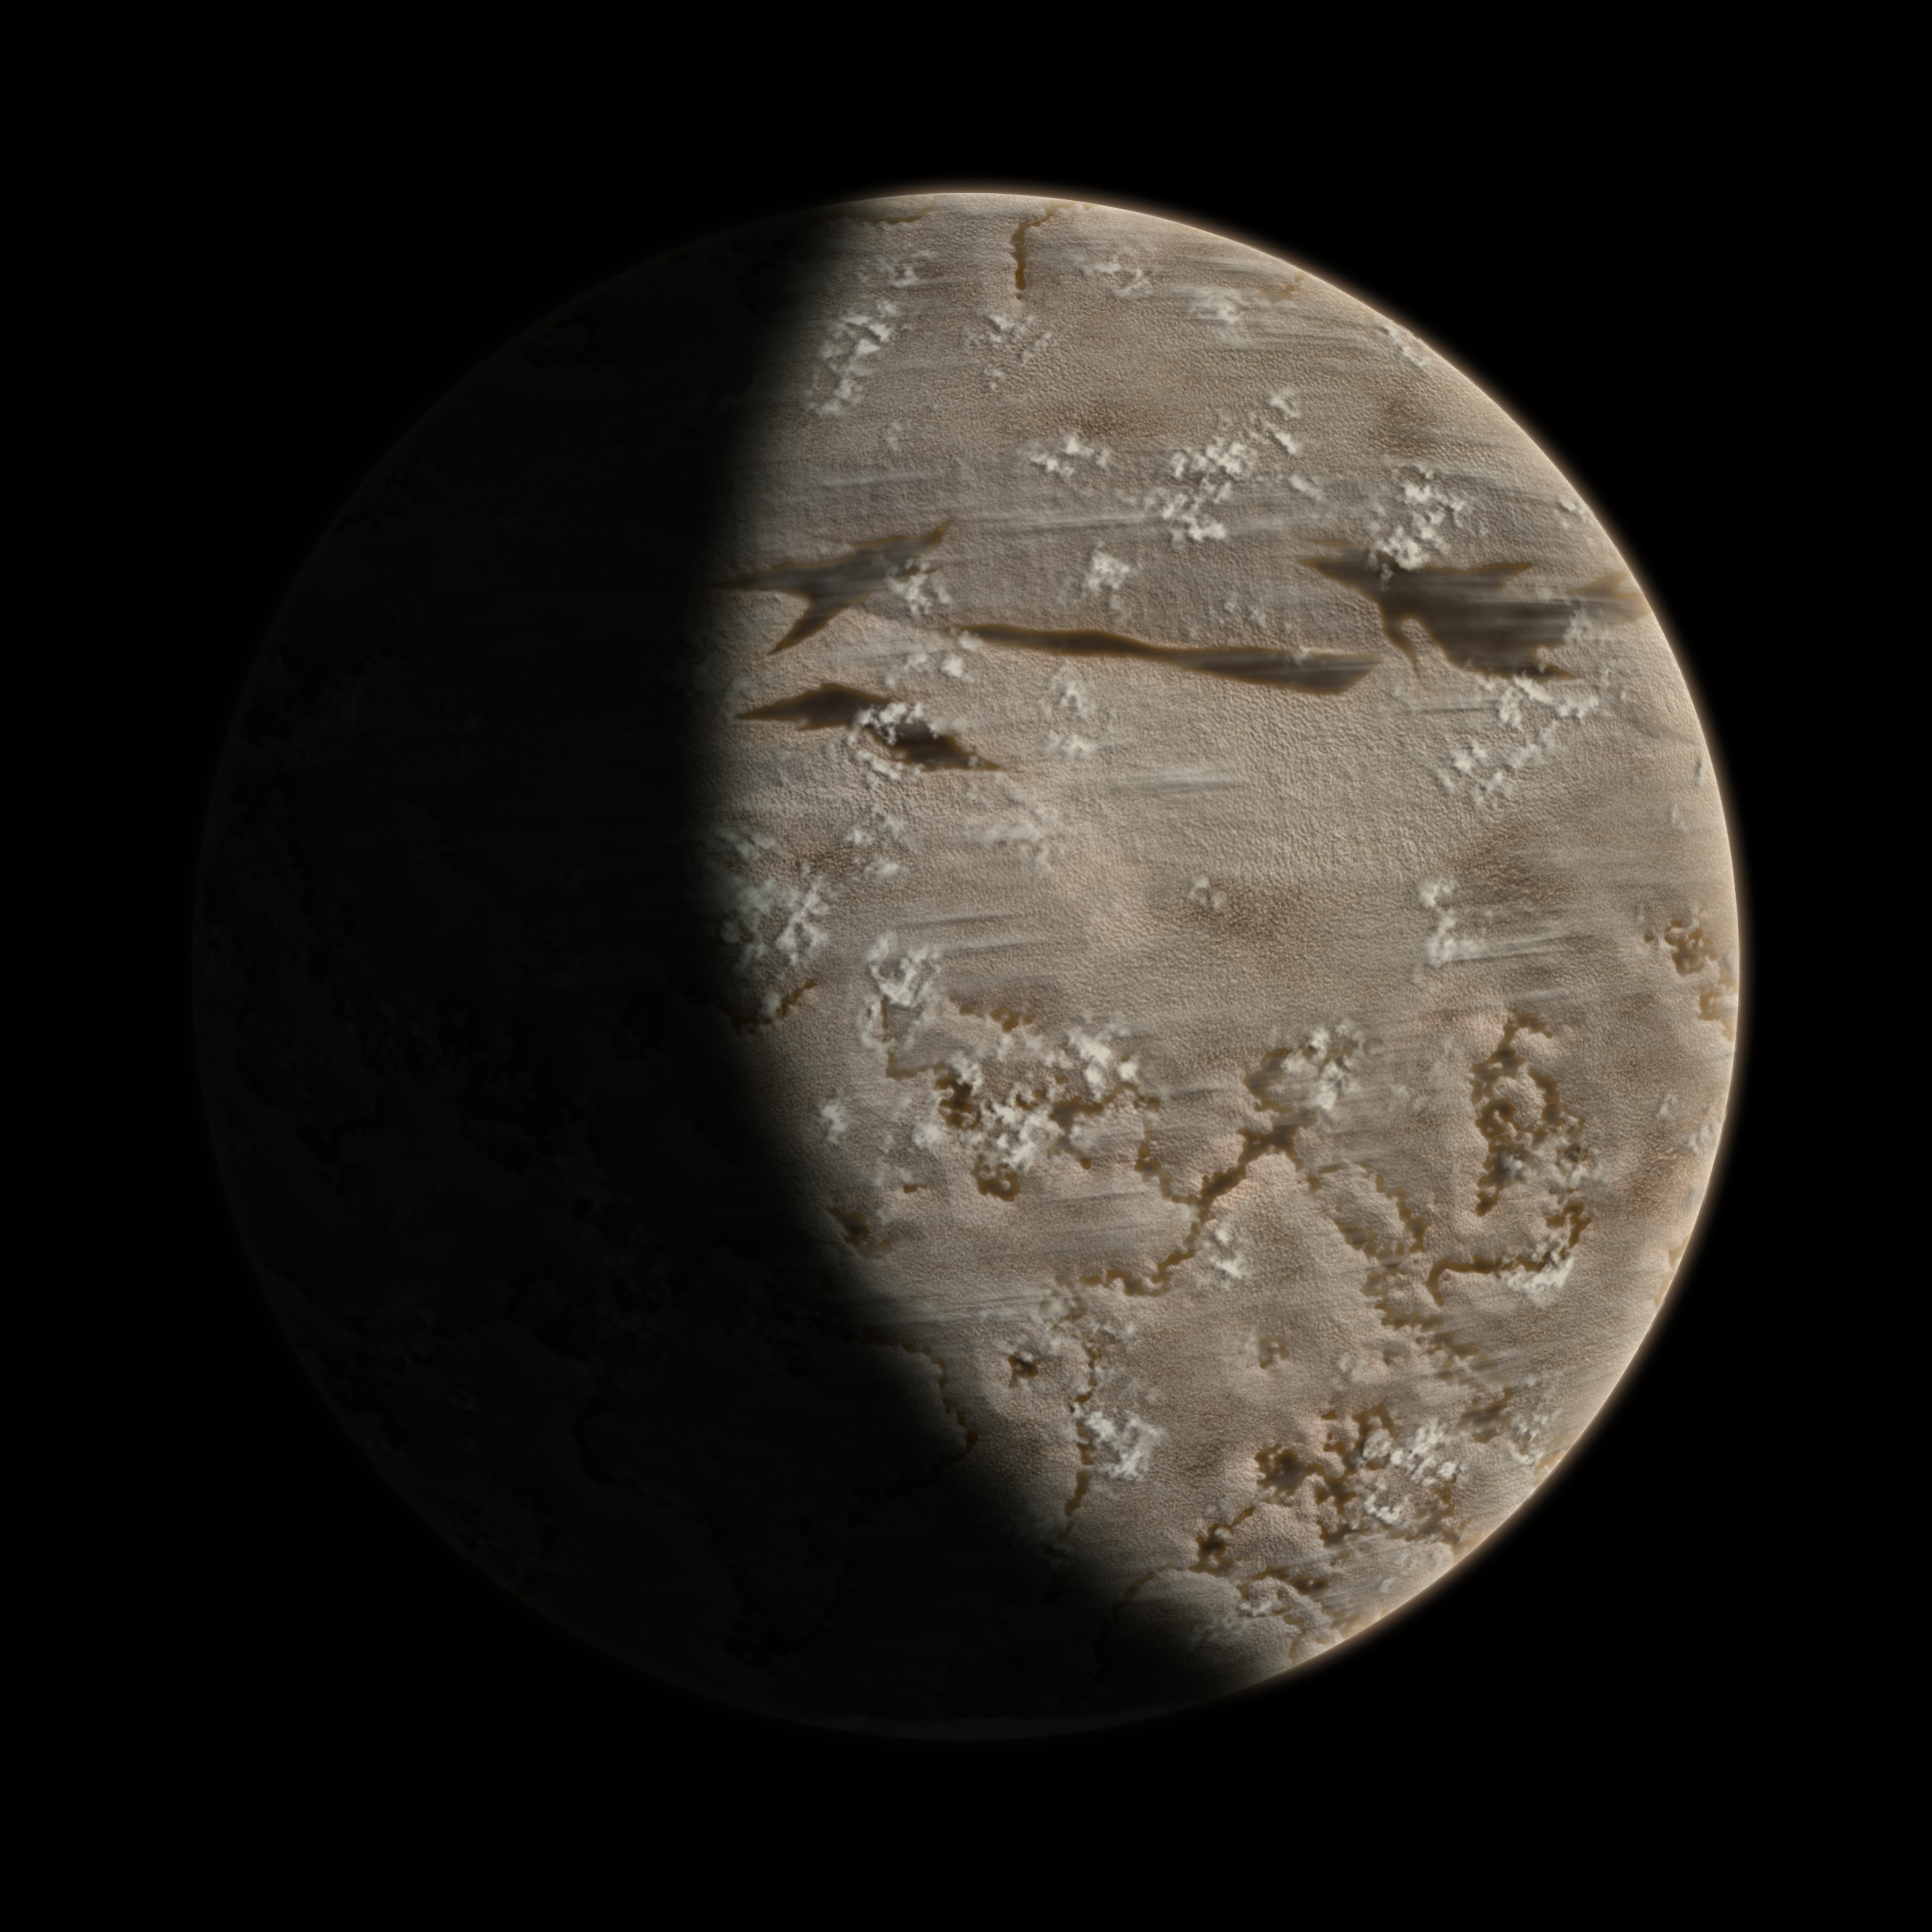 planet_destry_by_samio85-d7aq7d3.png